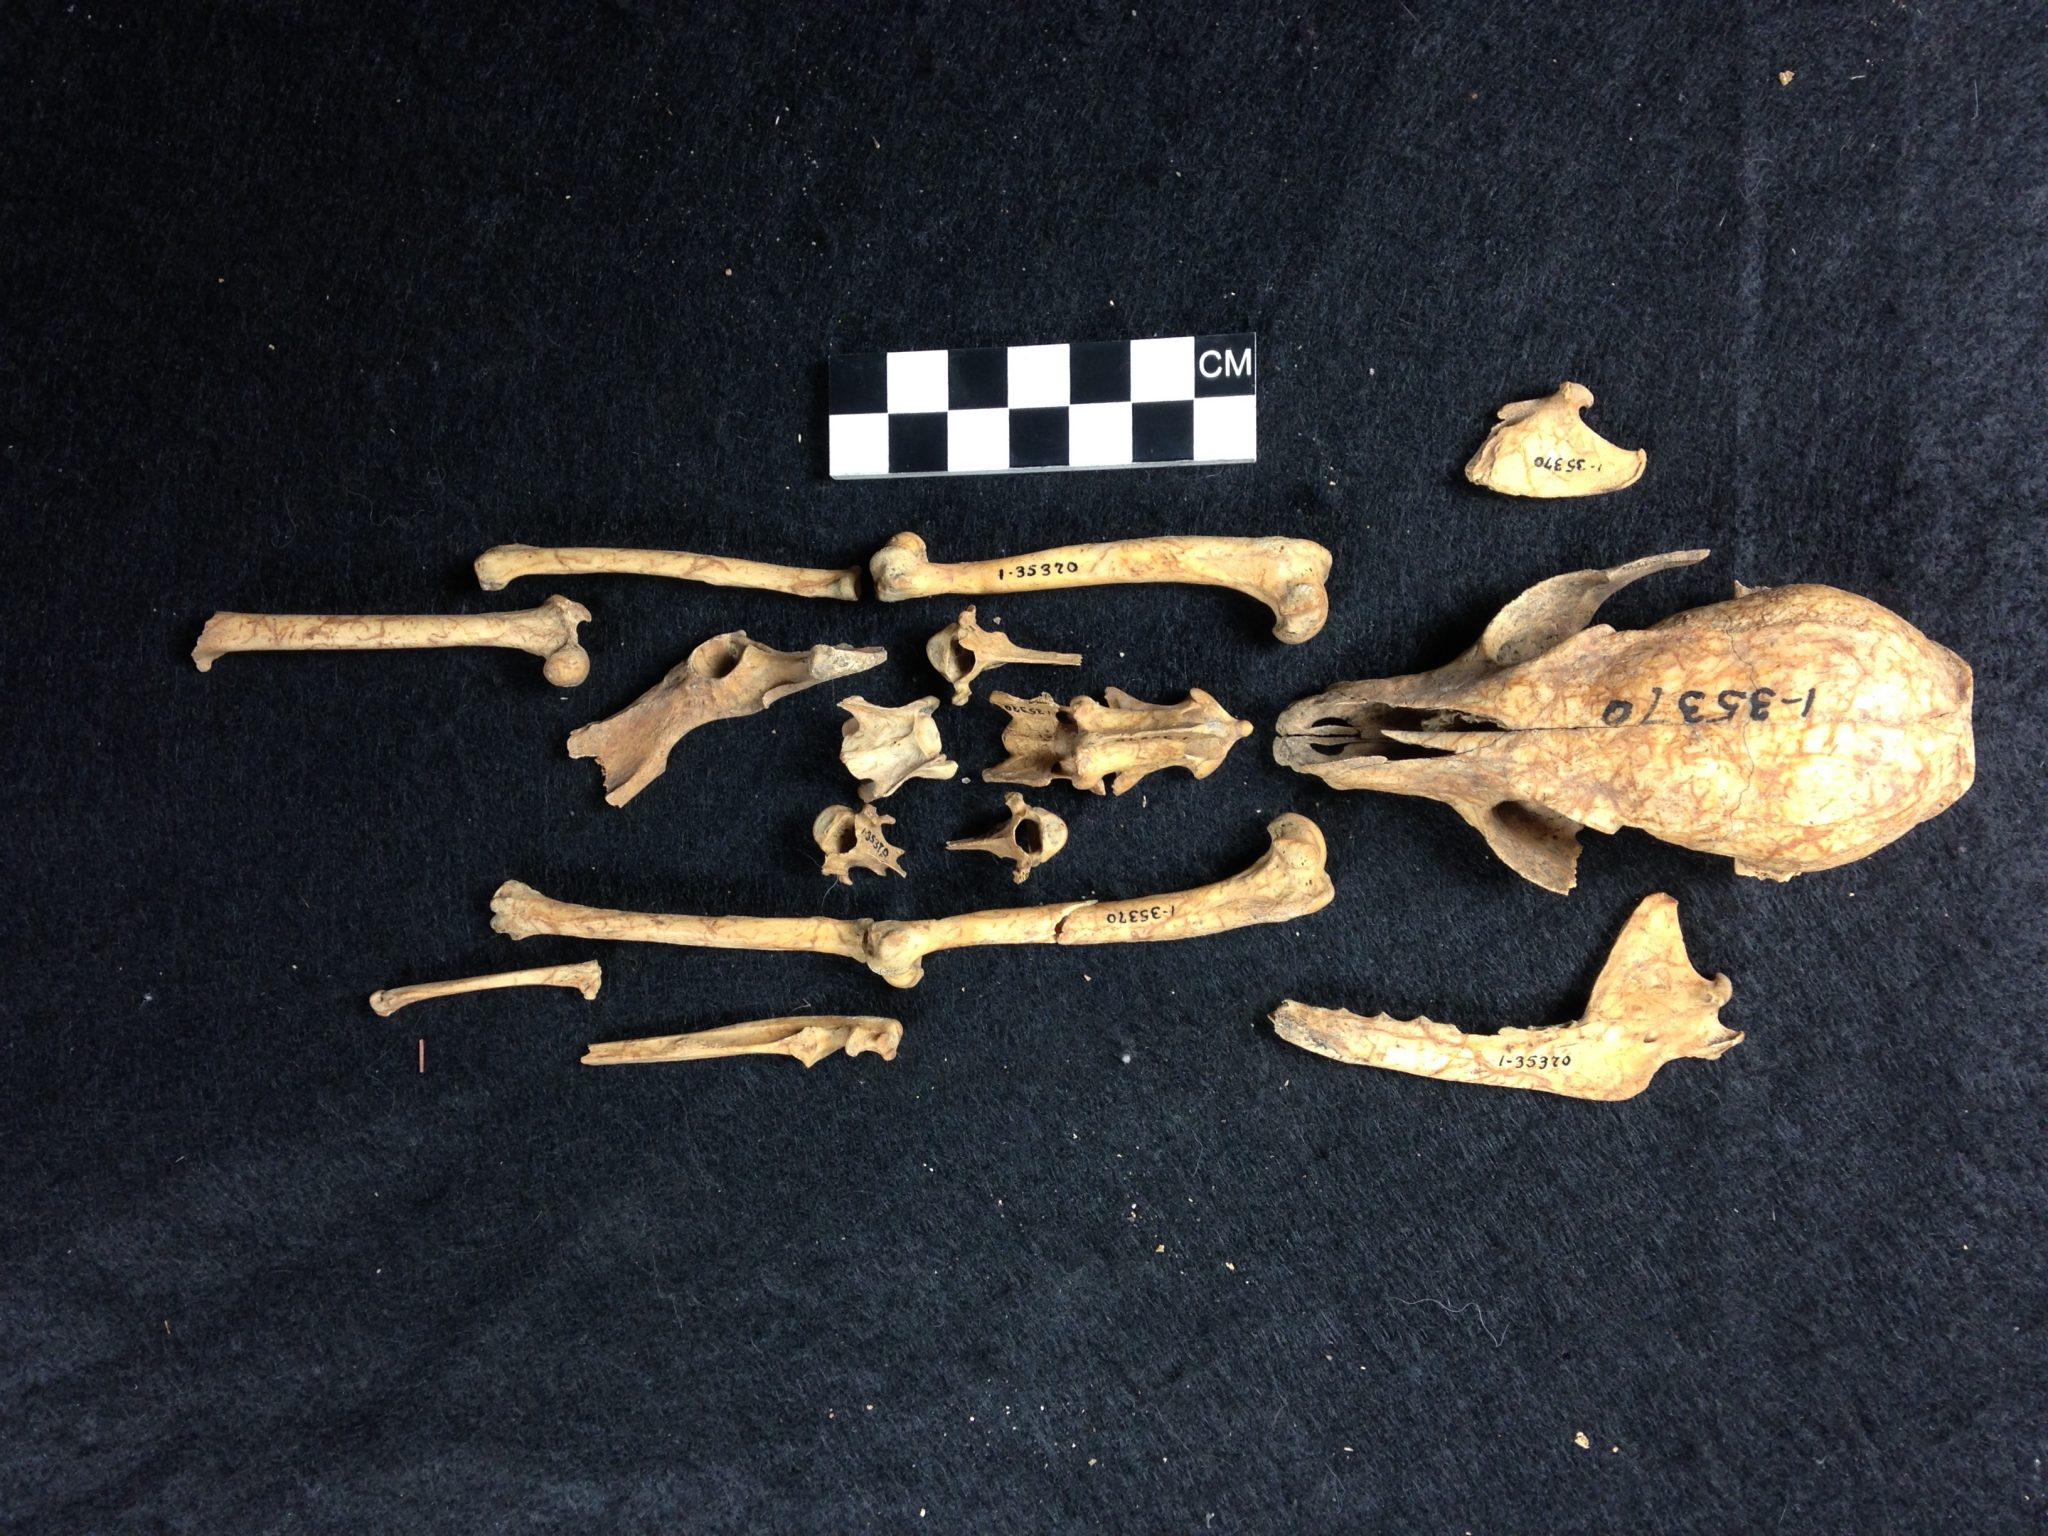 A skeleton of an island fox